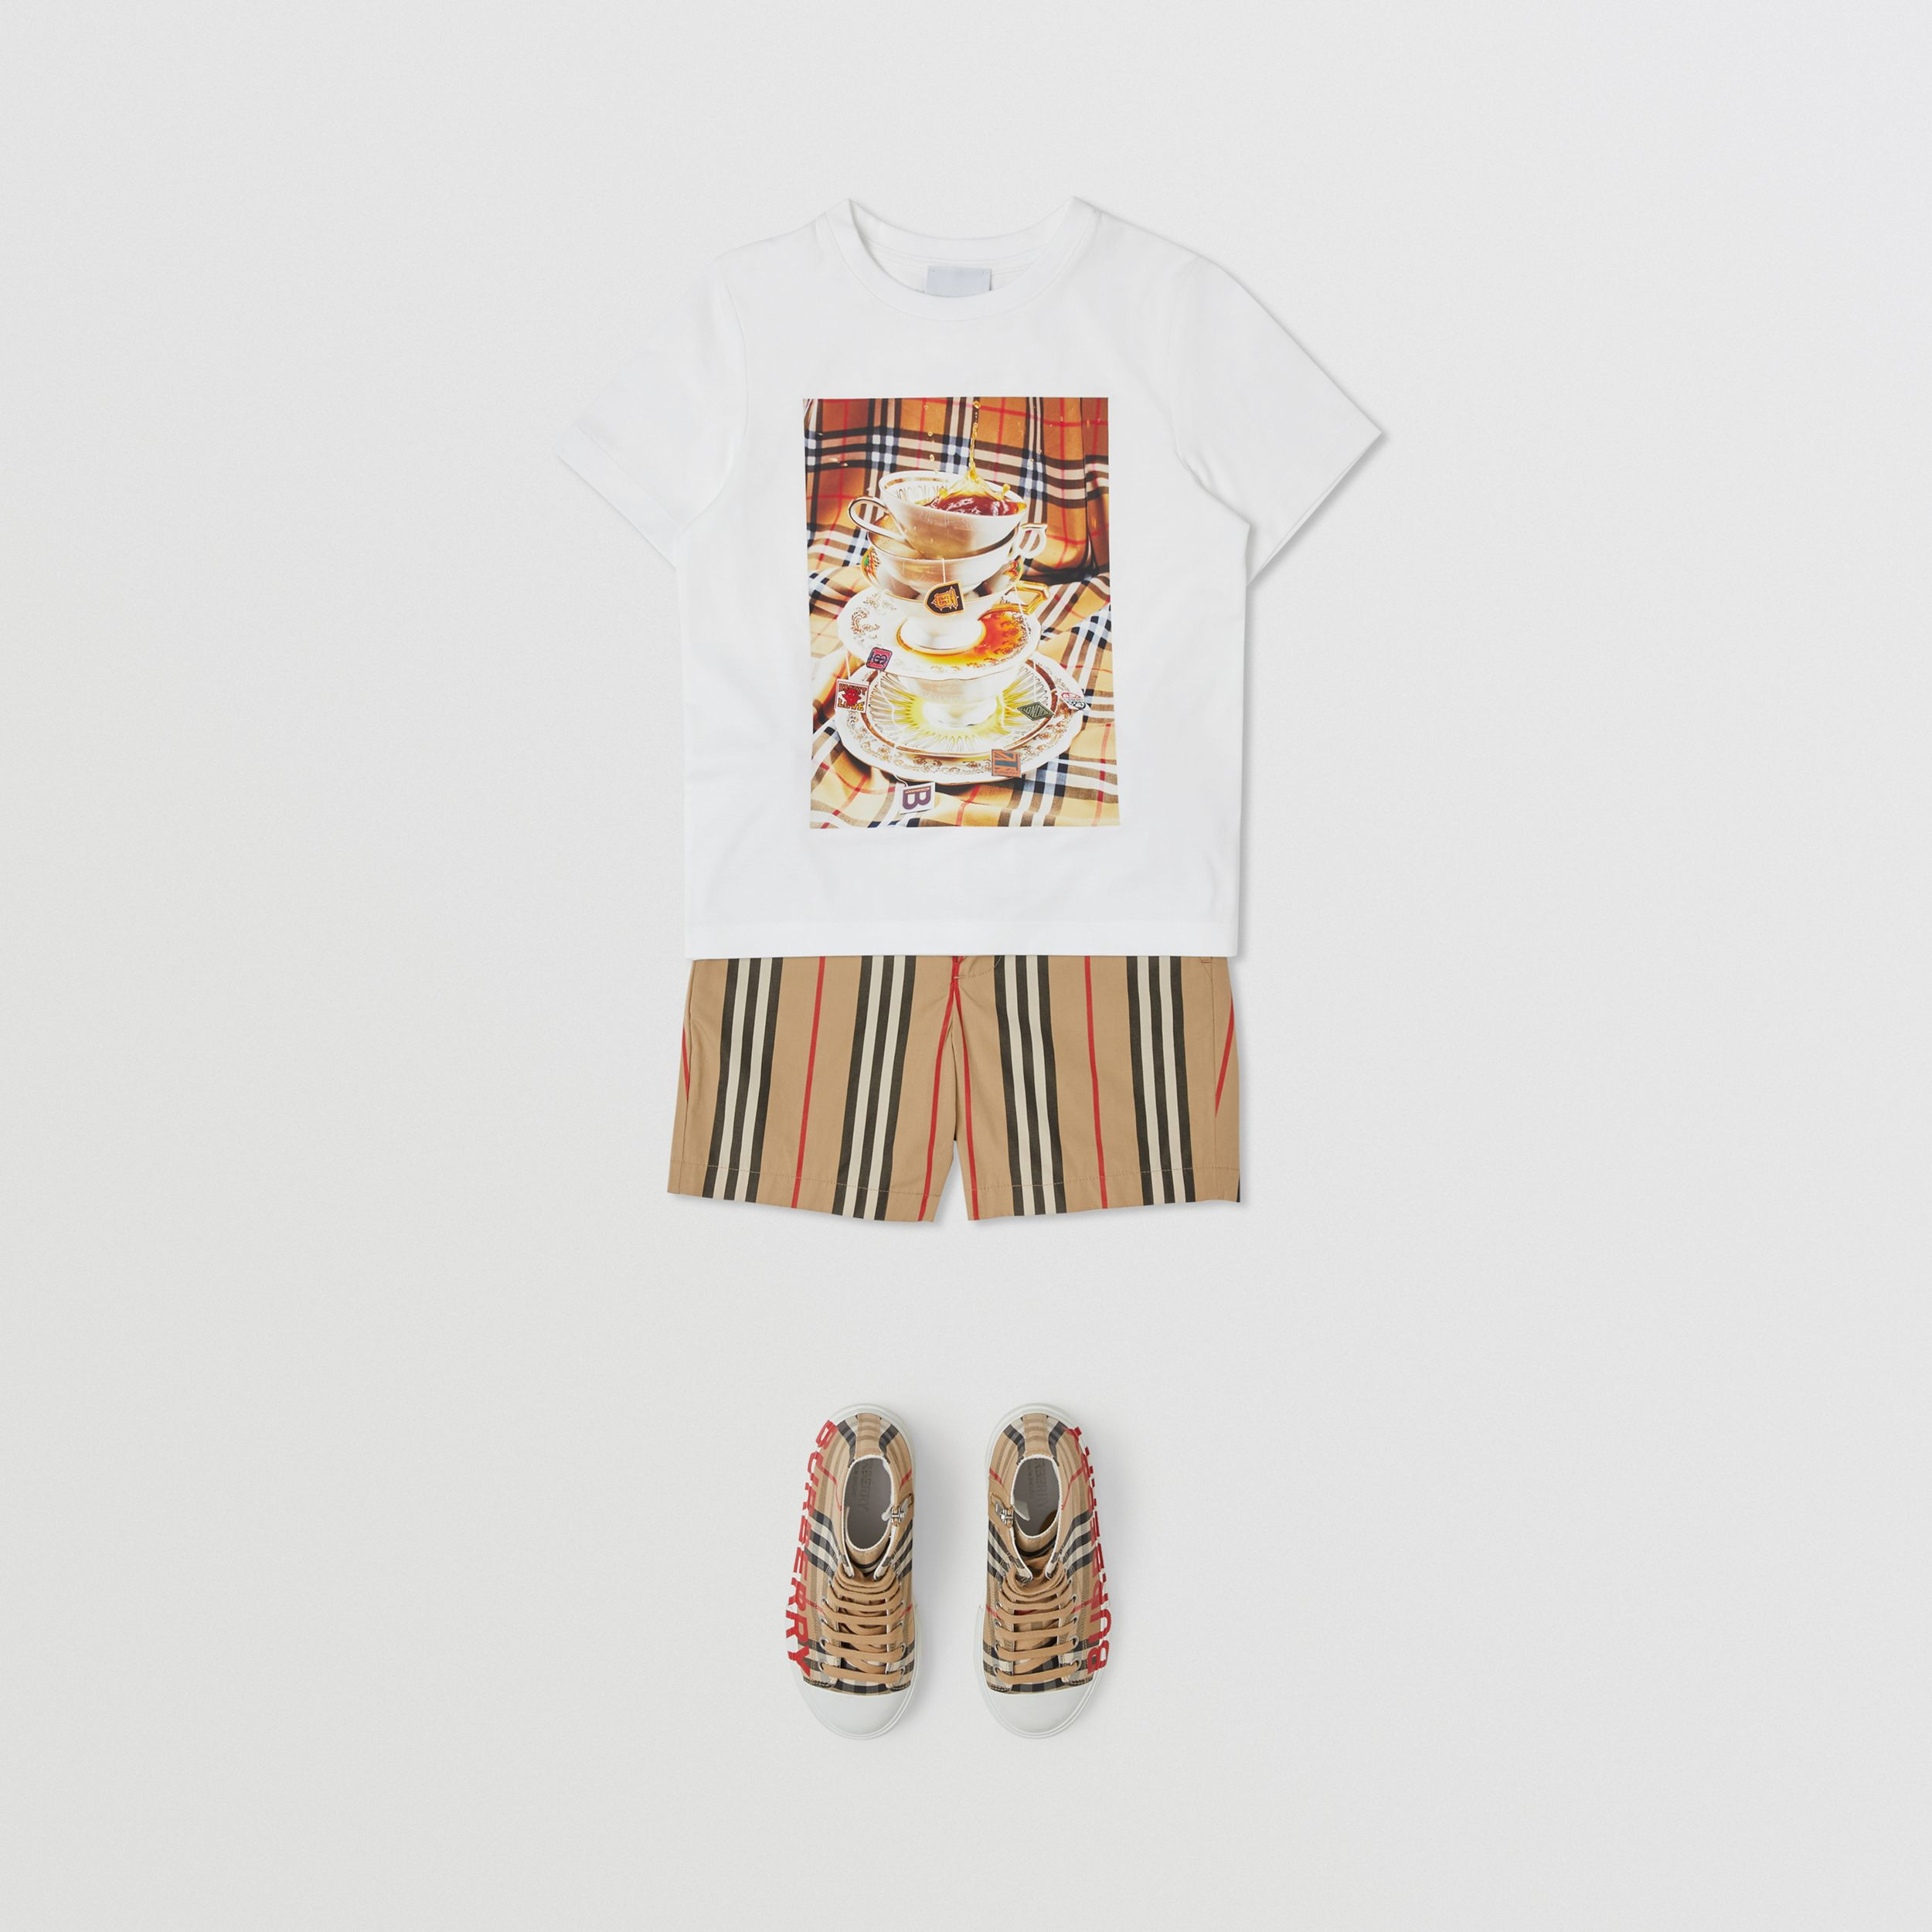 Teacup Print T-shirt in Multicolour | Burberry Singapore - 4